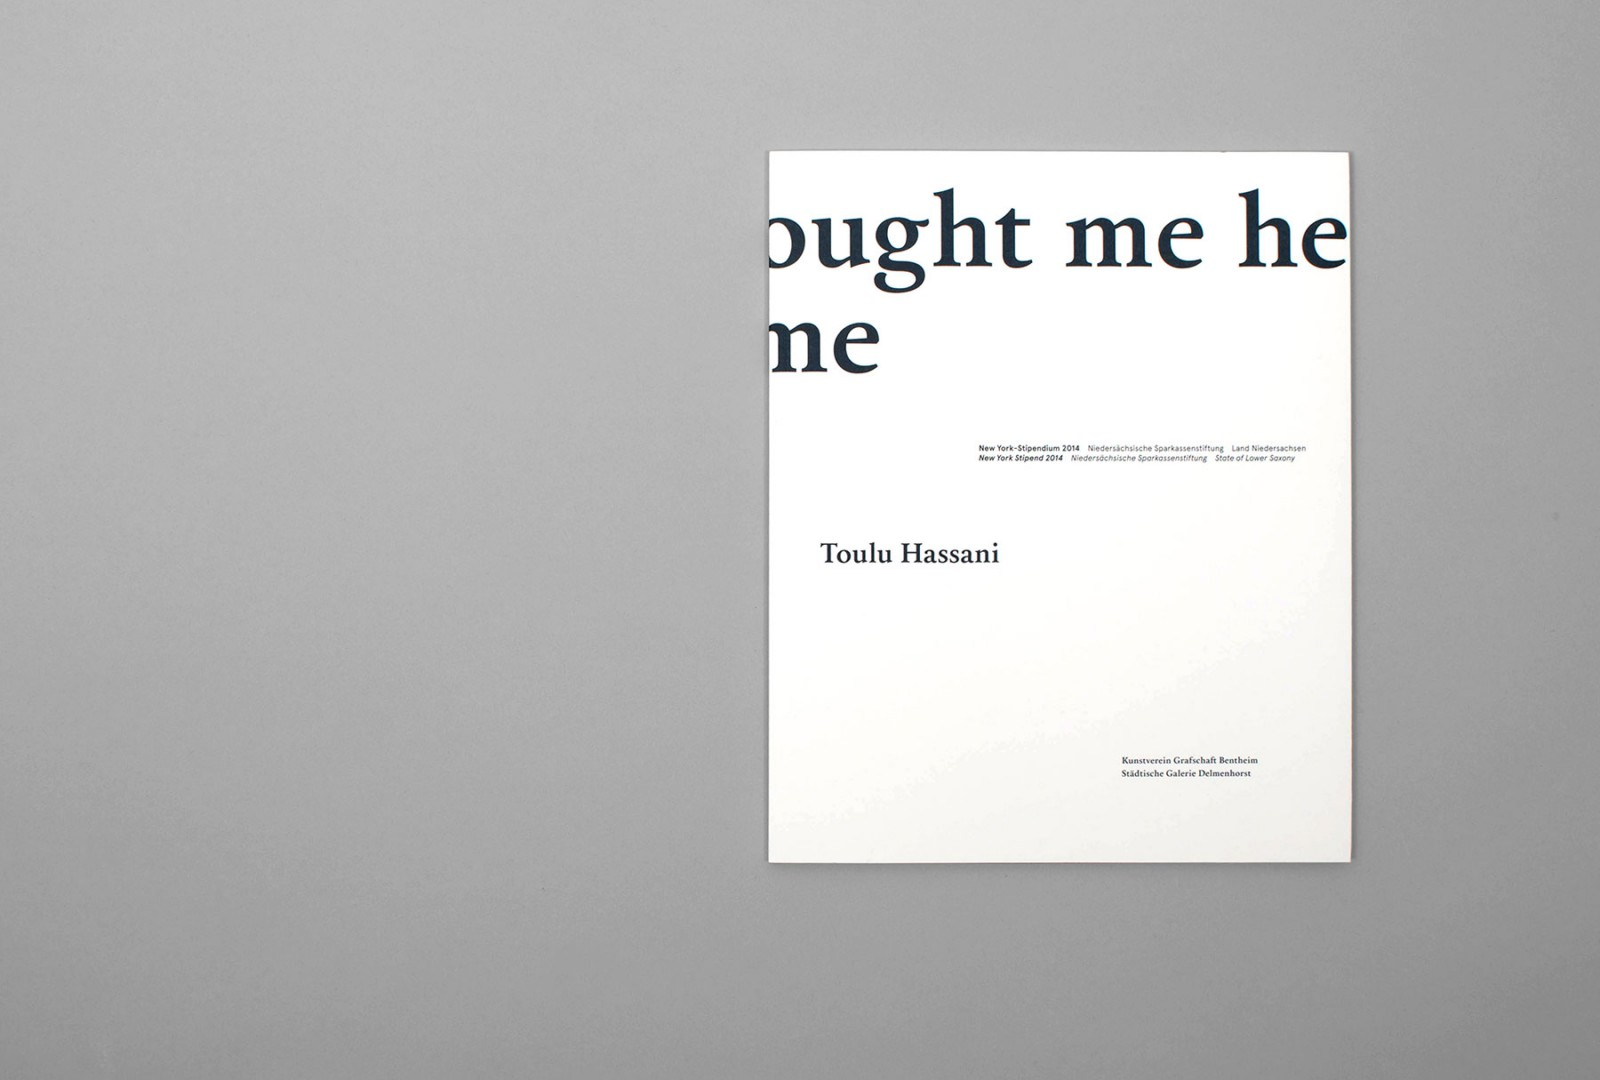 Toulu Hassani—whoever brought me here has to take me home